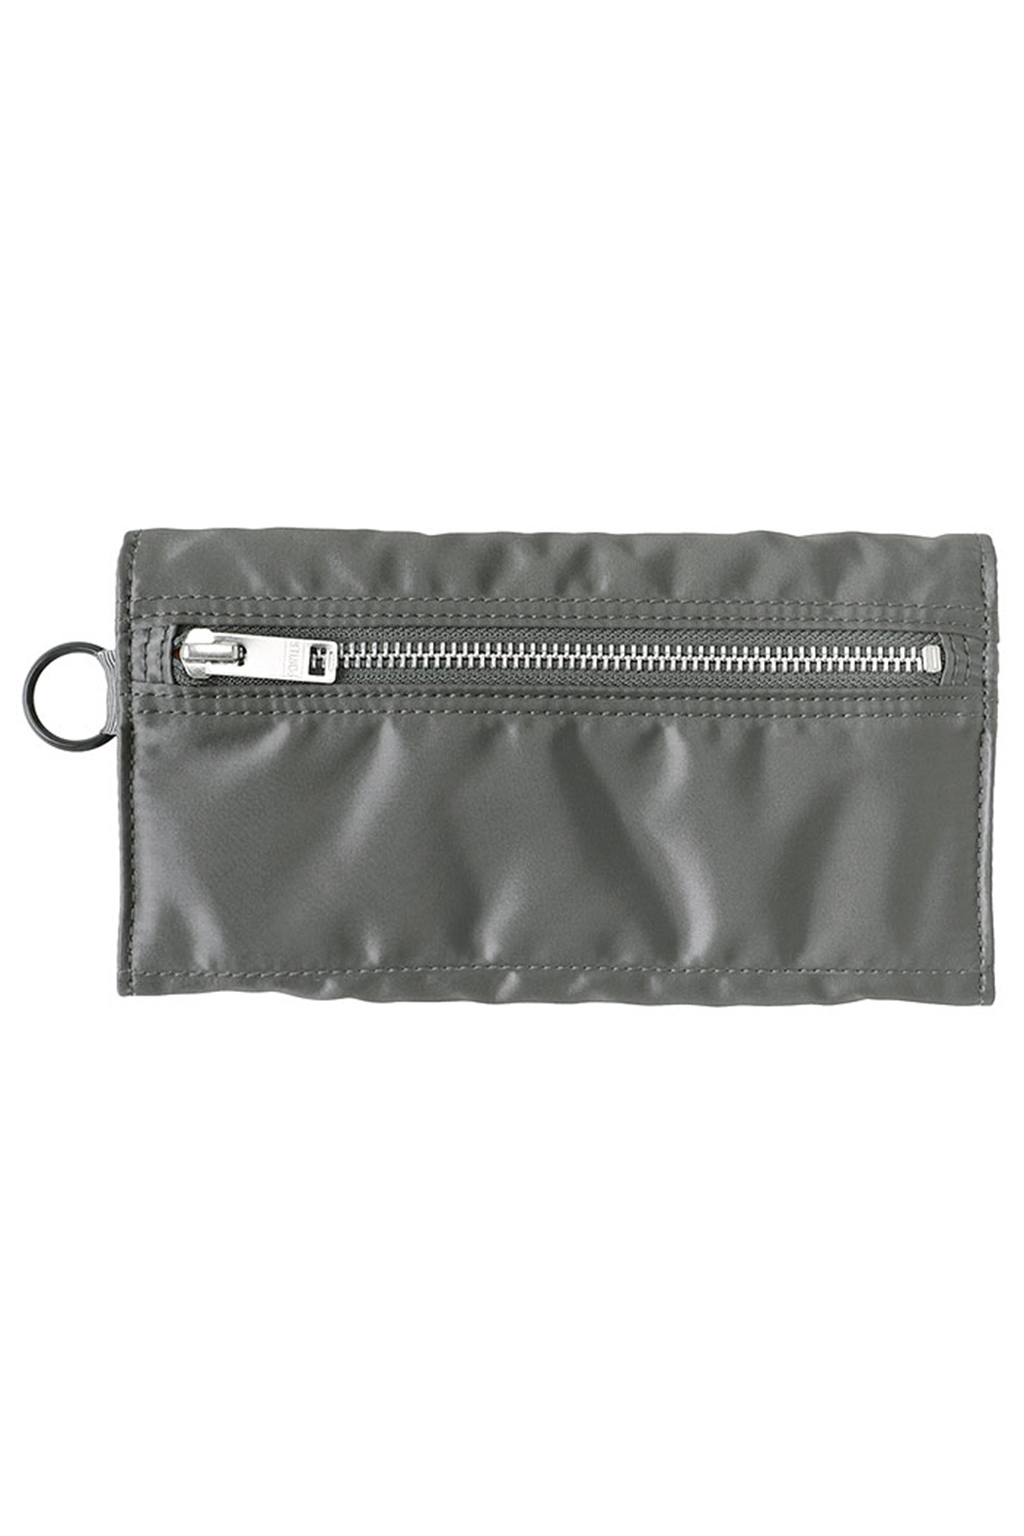 Porter Yoshida Tanker - Long Wallet - in 3 Color Choices